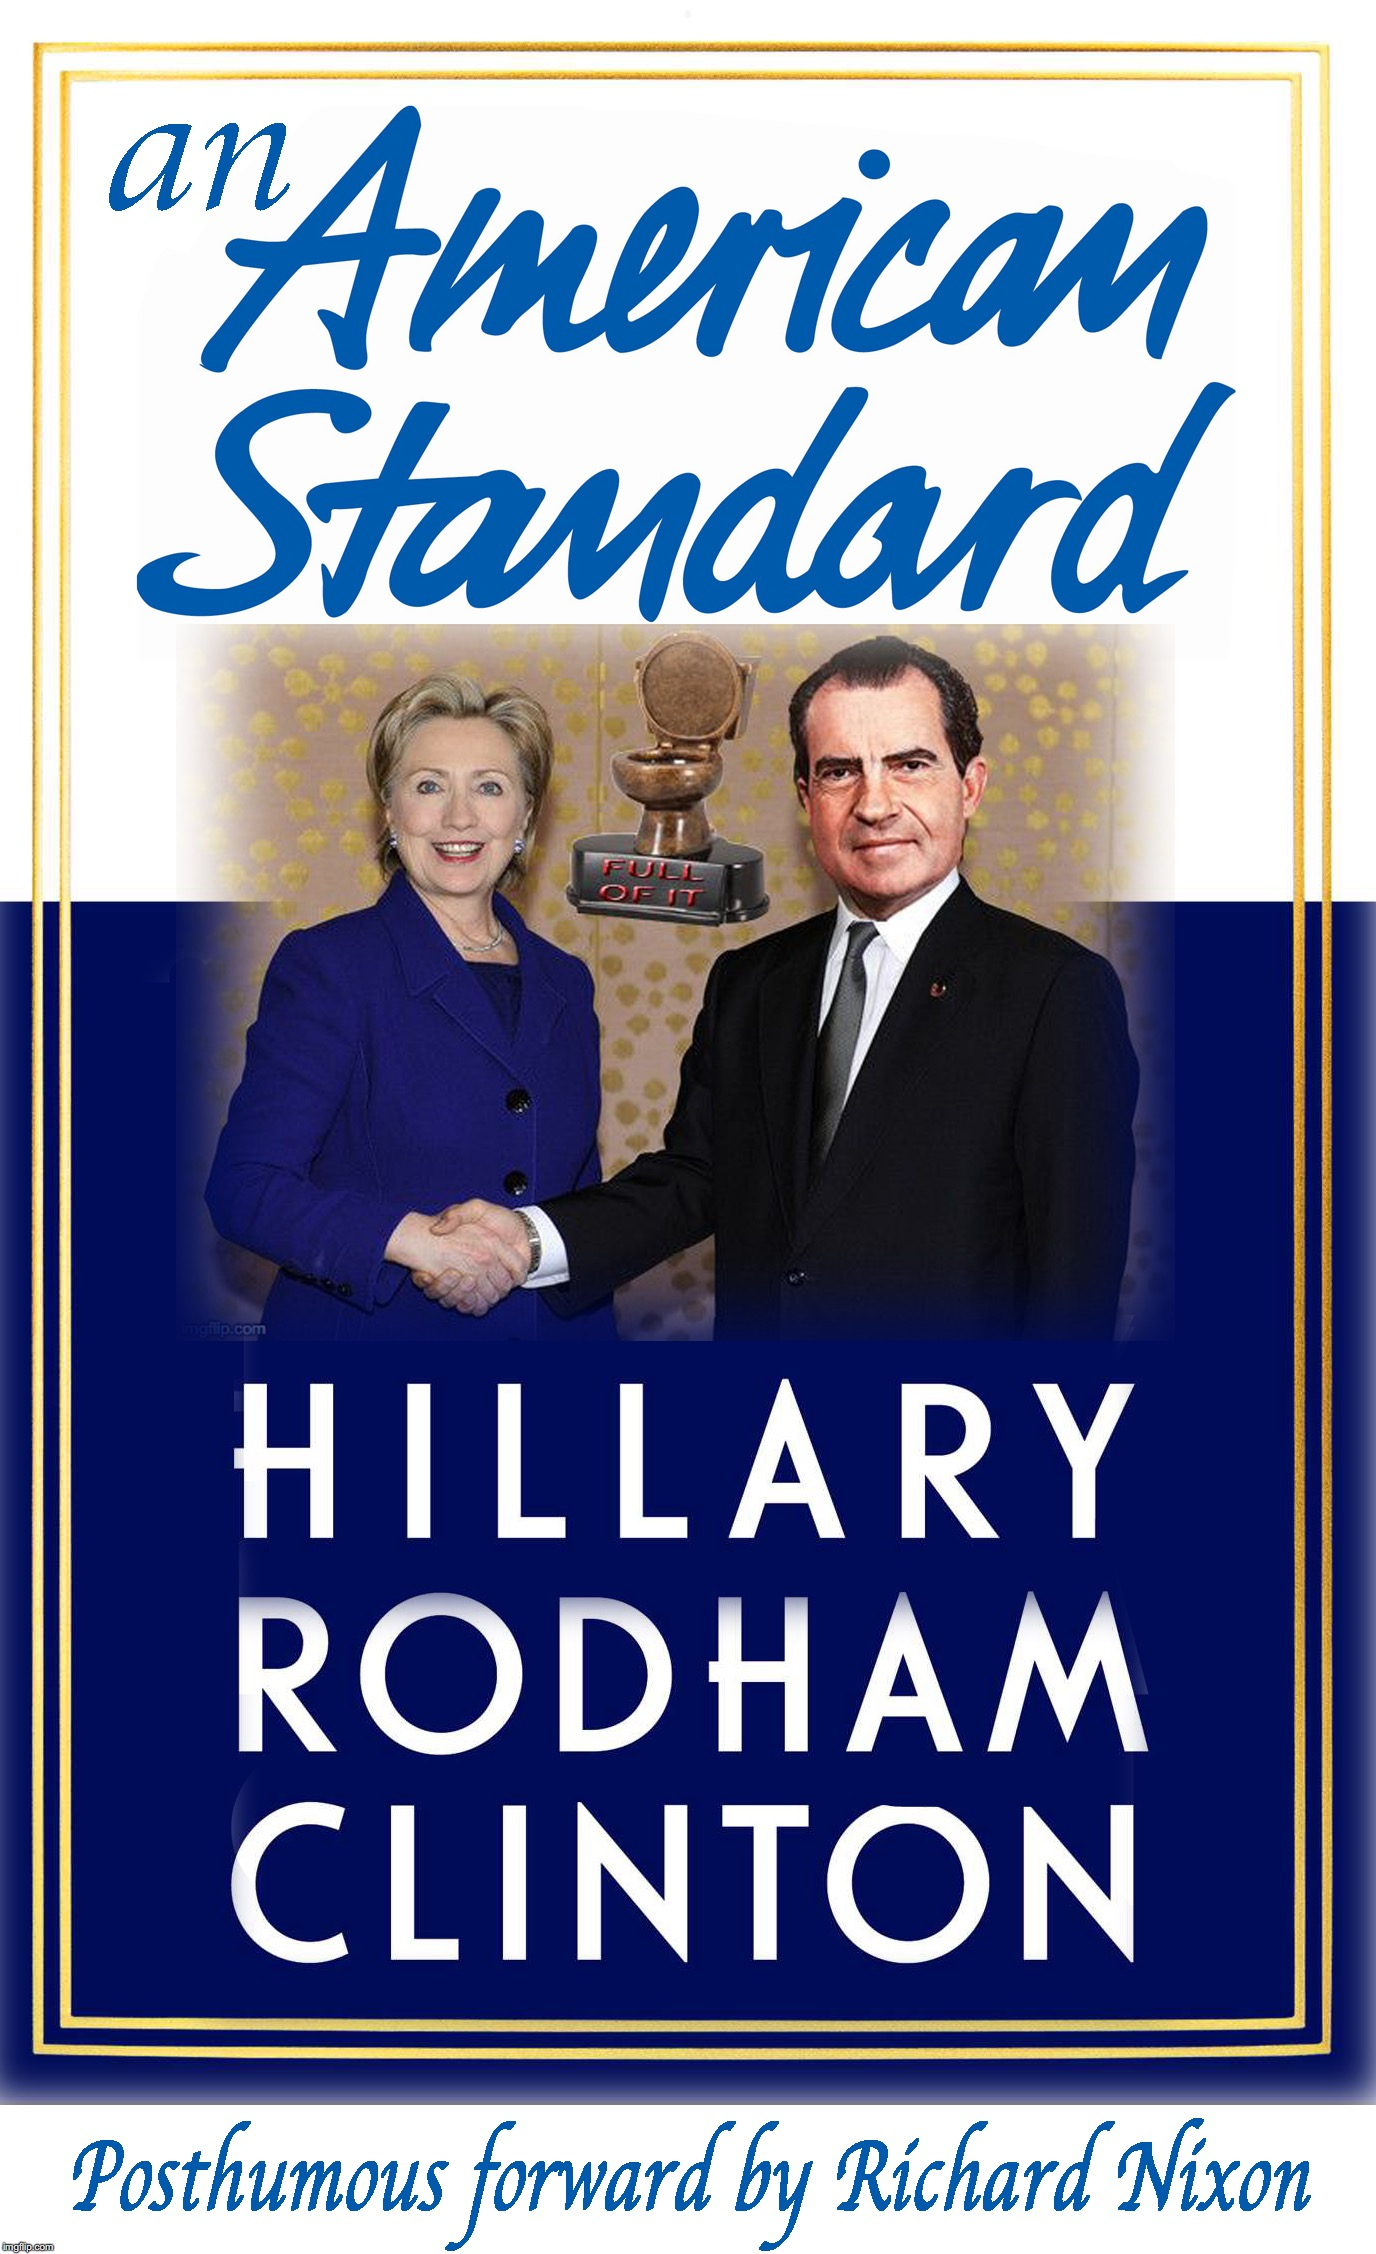 this book would have been a royal flush..... [satirical content] | B | image tagged in hillary clinton,richard nixon | made w/ Imgflip meme maker